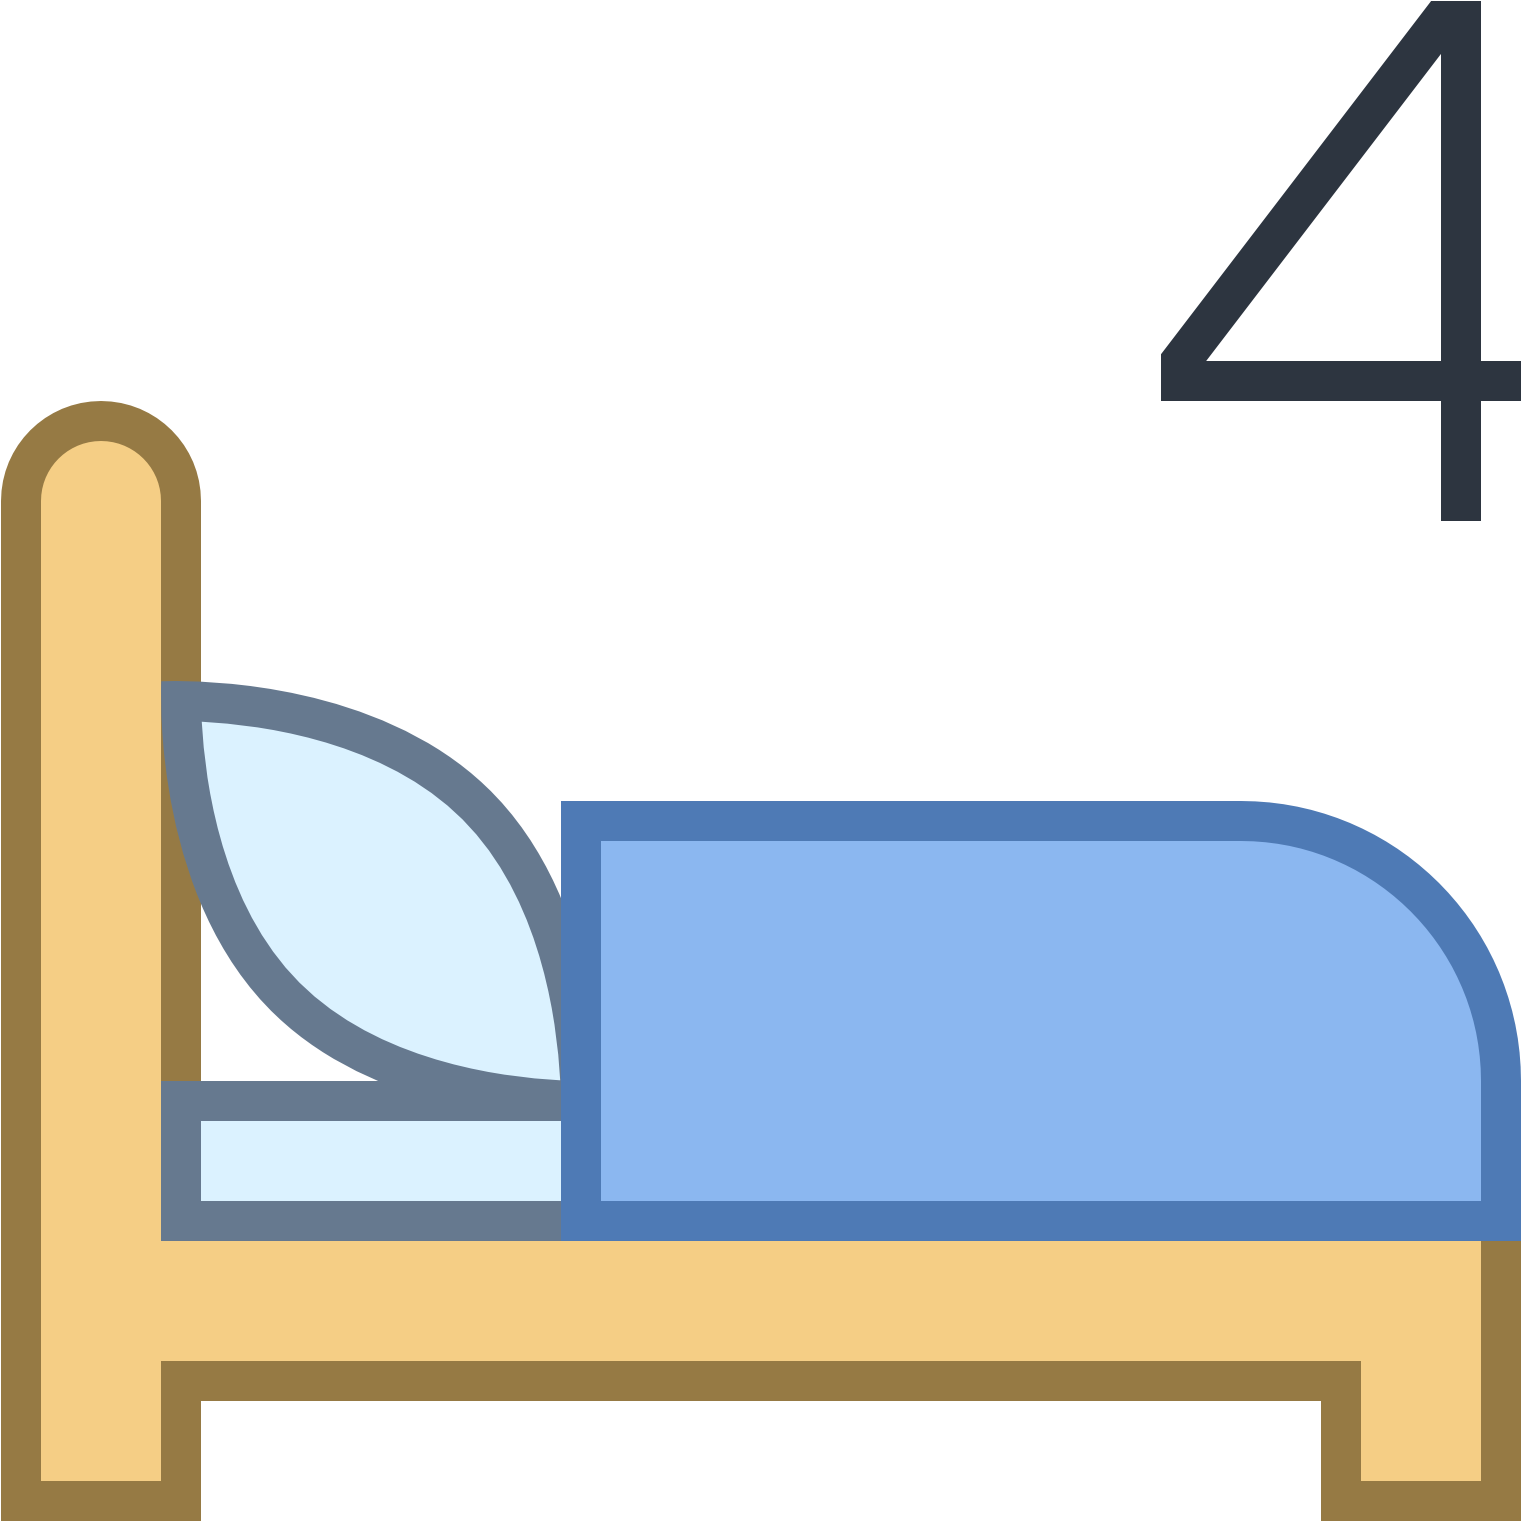 Transparent make bed clip art - Make The Bed Icon